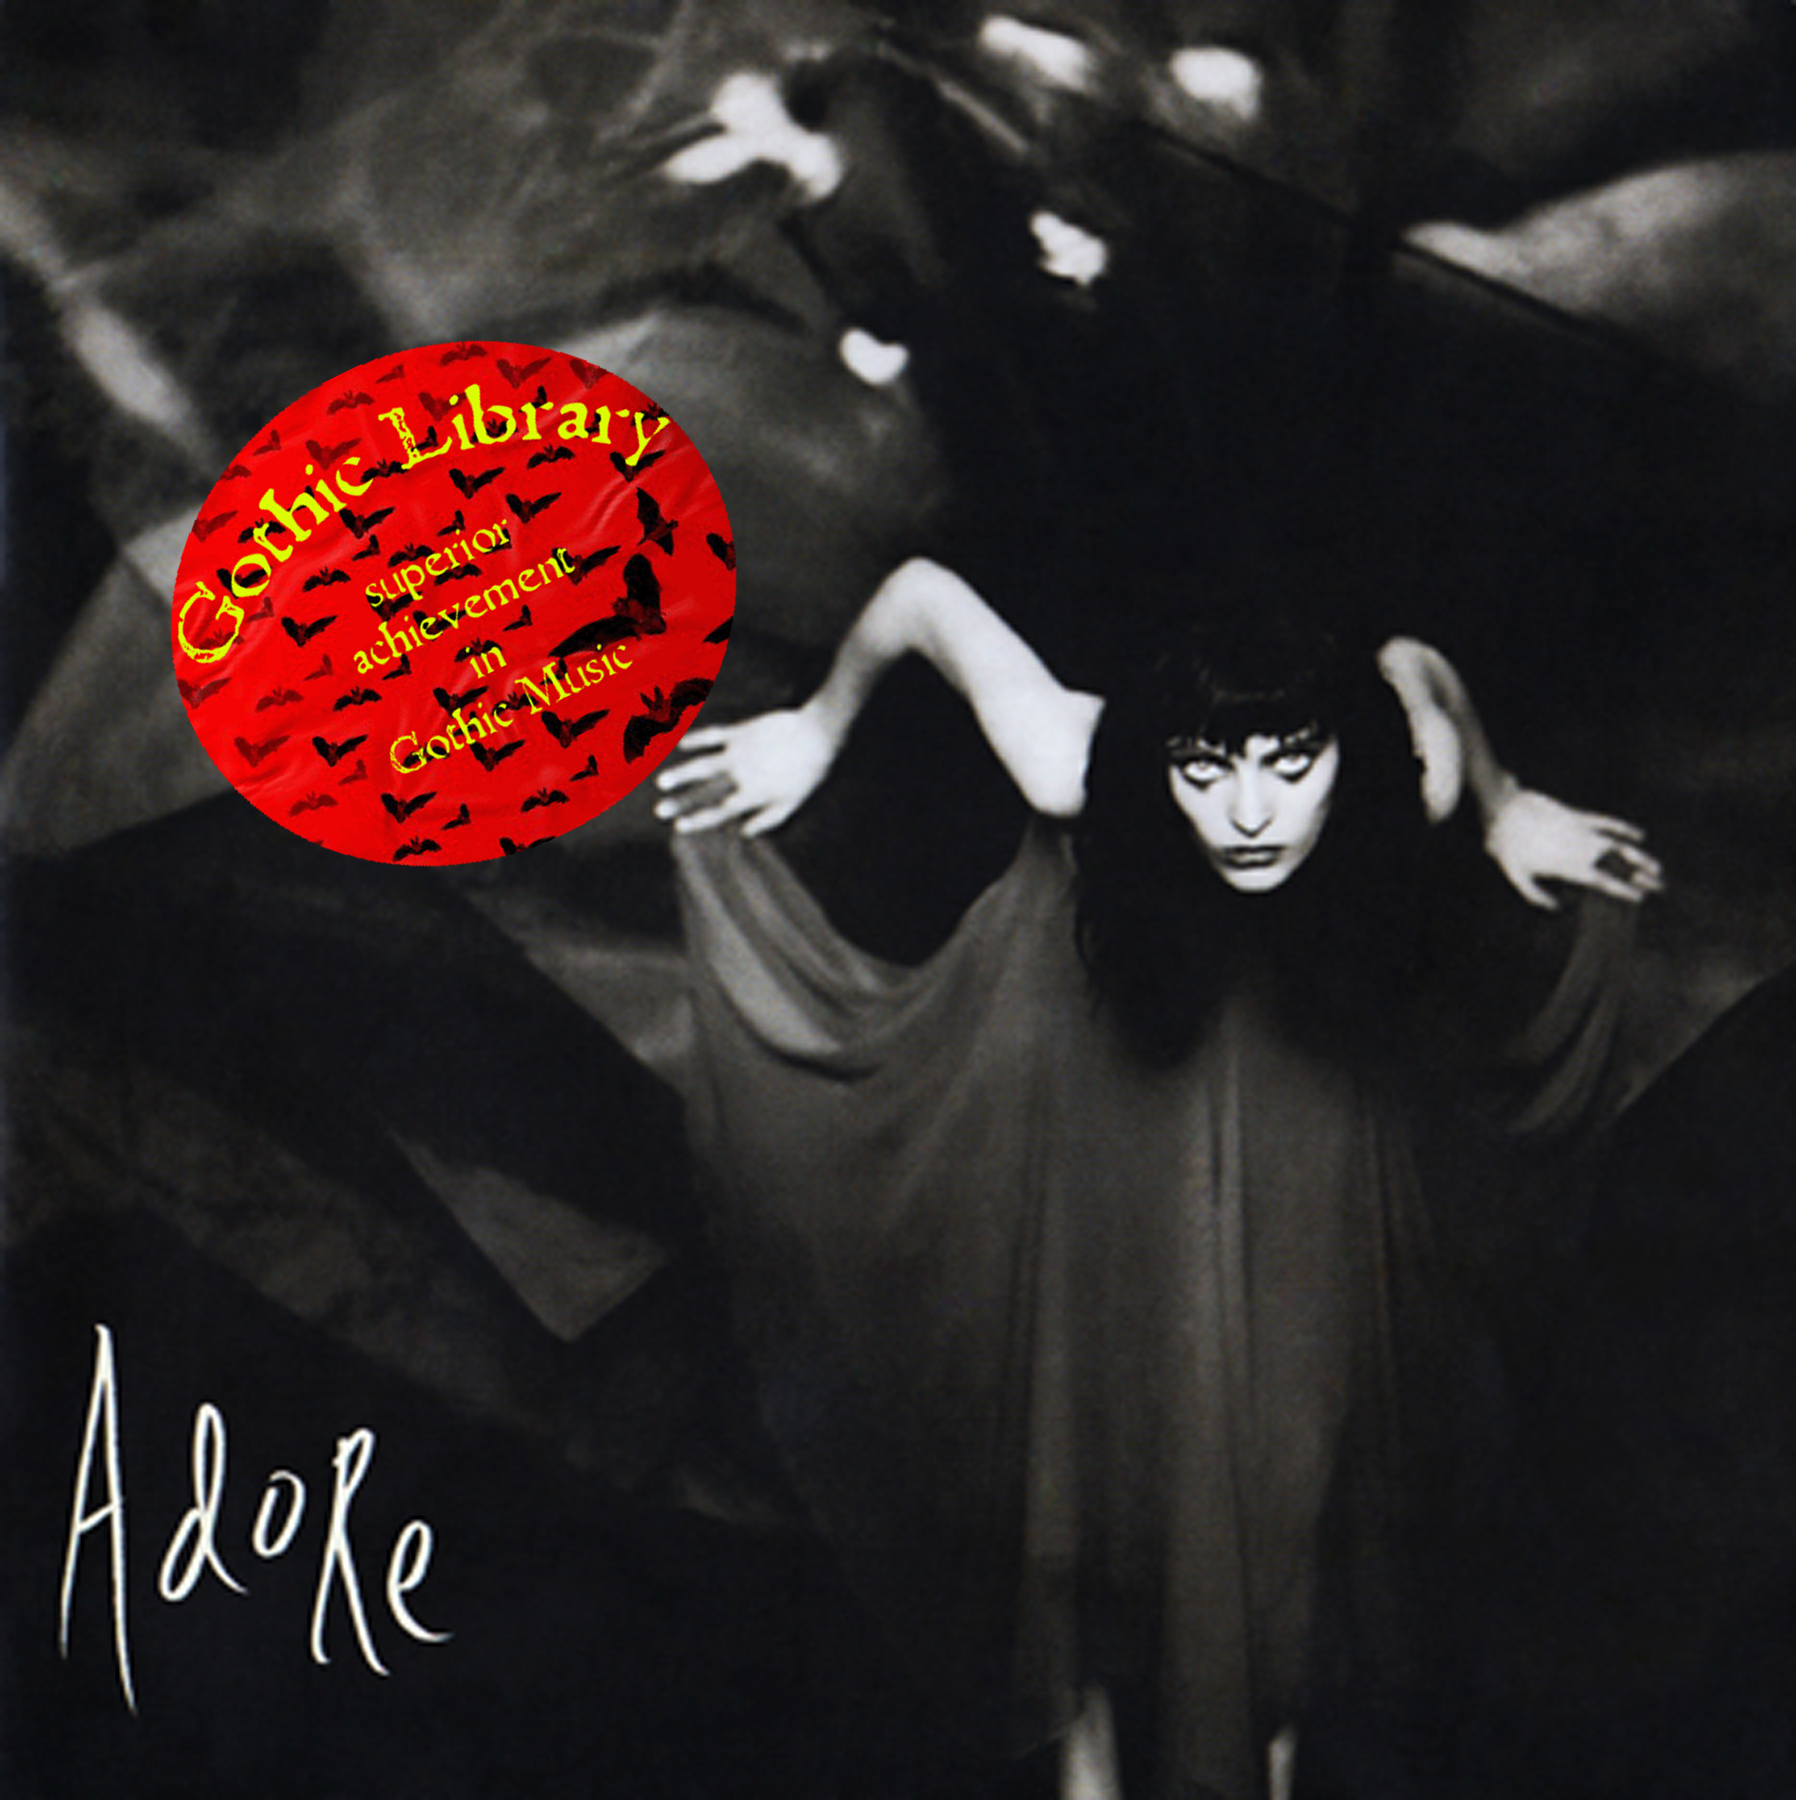 Superior Achievement in Gothic Music: Adore by the Smashing Pumpkins